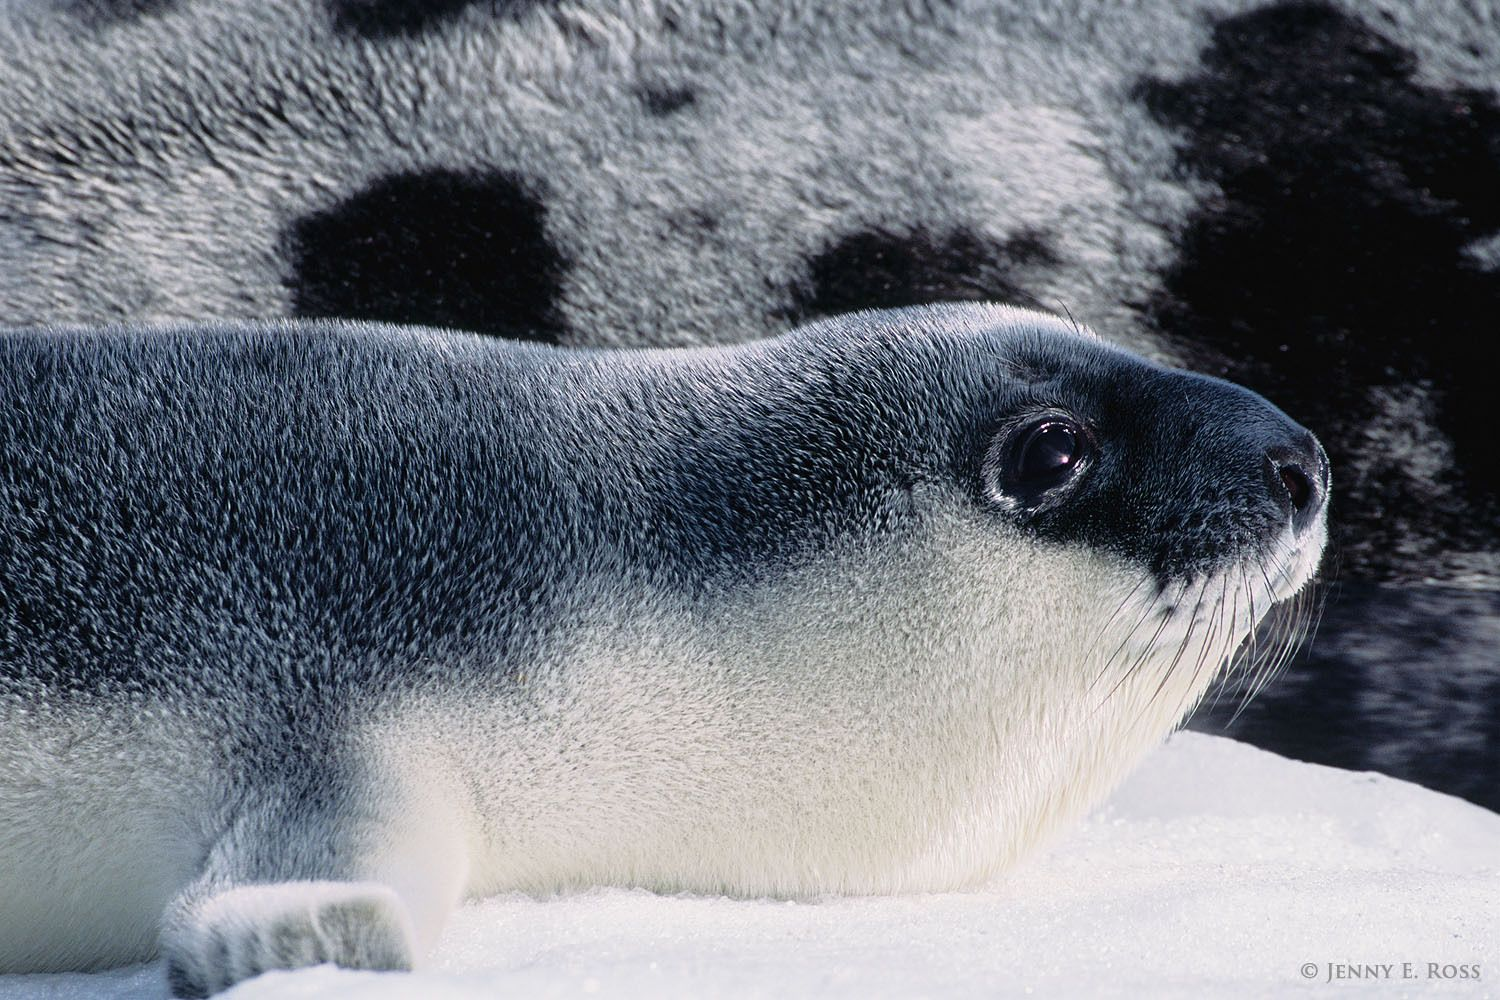 A newborn hooded seal pup (Cystophora cristata) lies next to its mother on the floating sea ice where the pup was born.